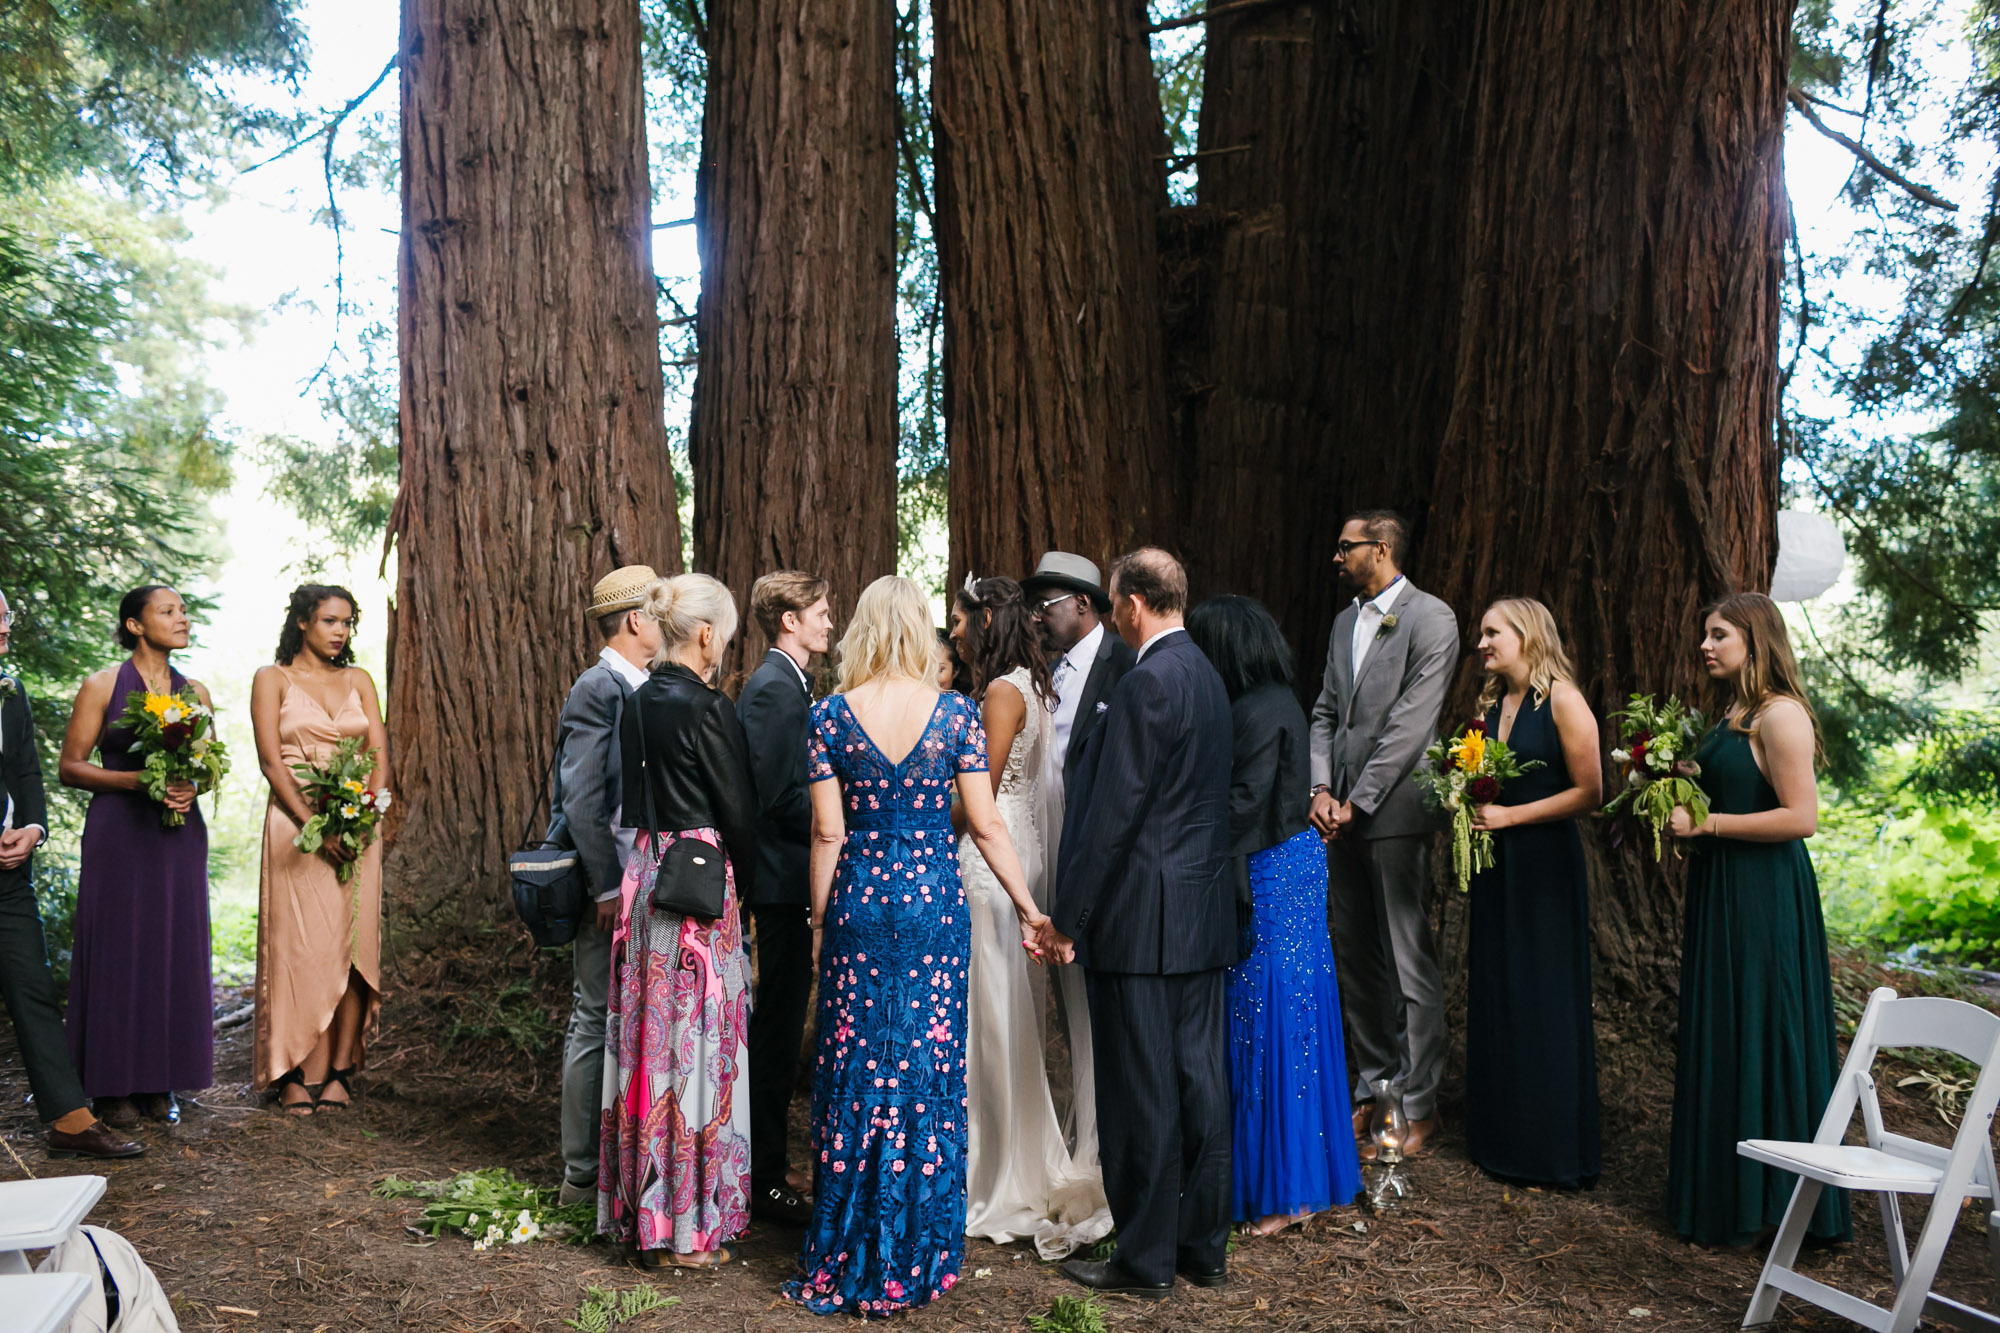 Family surround wedding couple during ceremony in a redwood grove